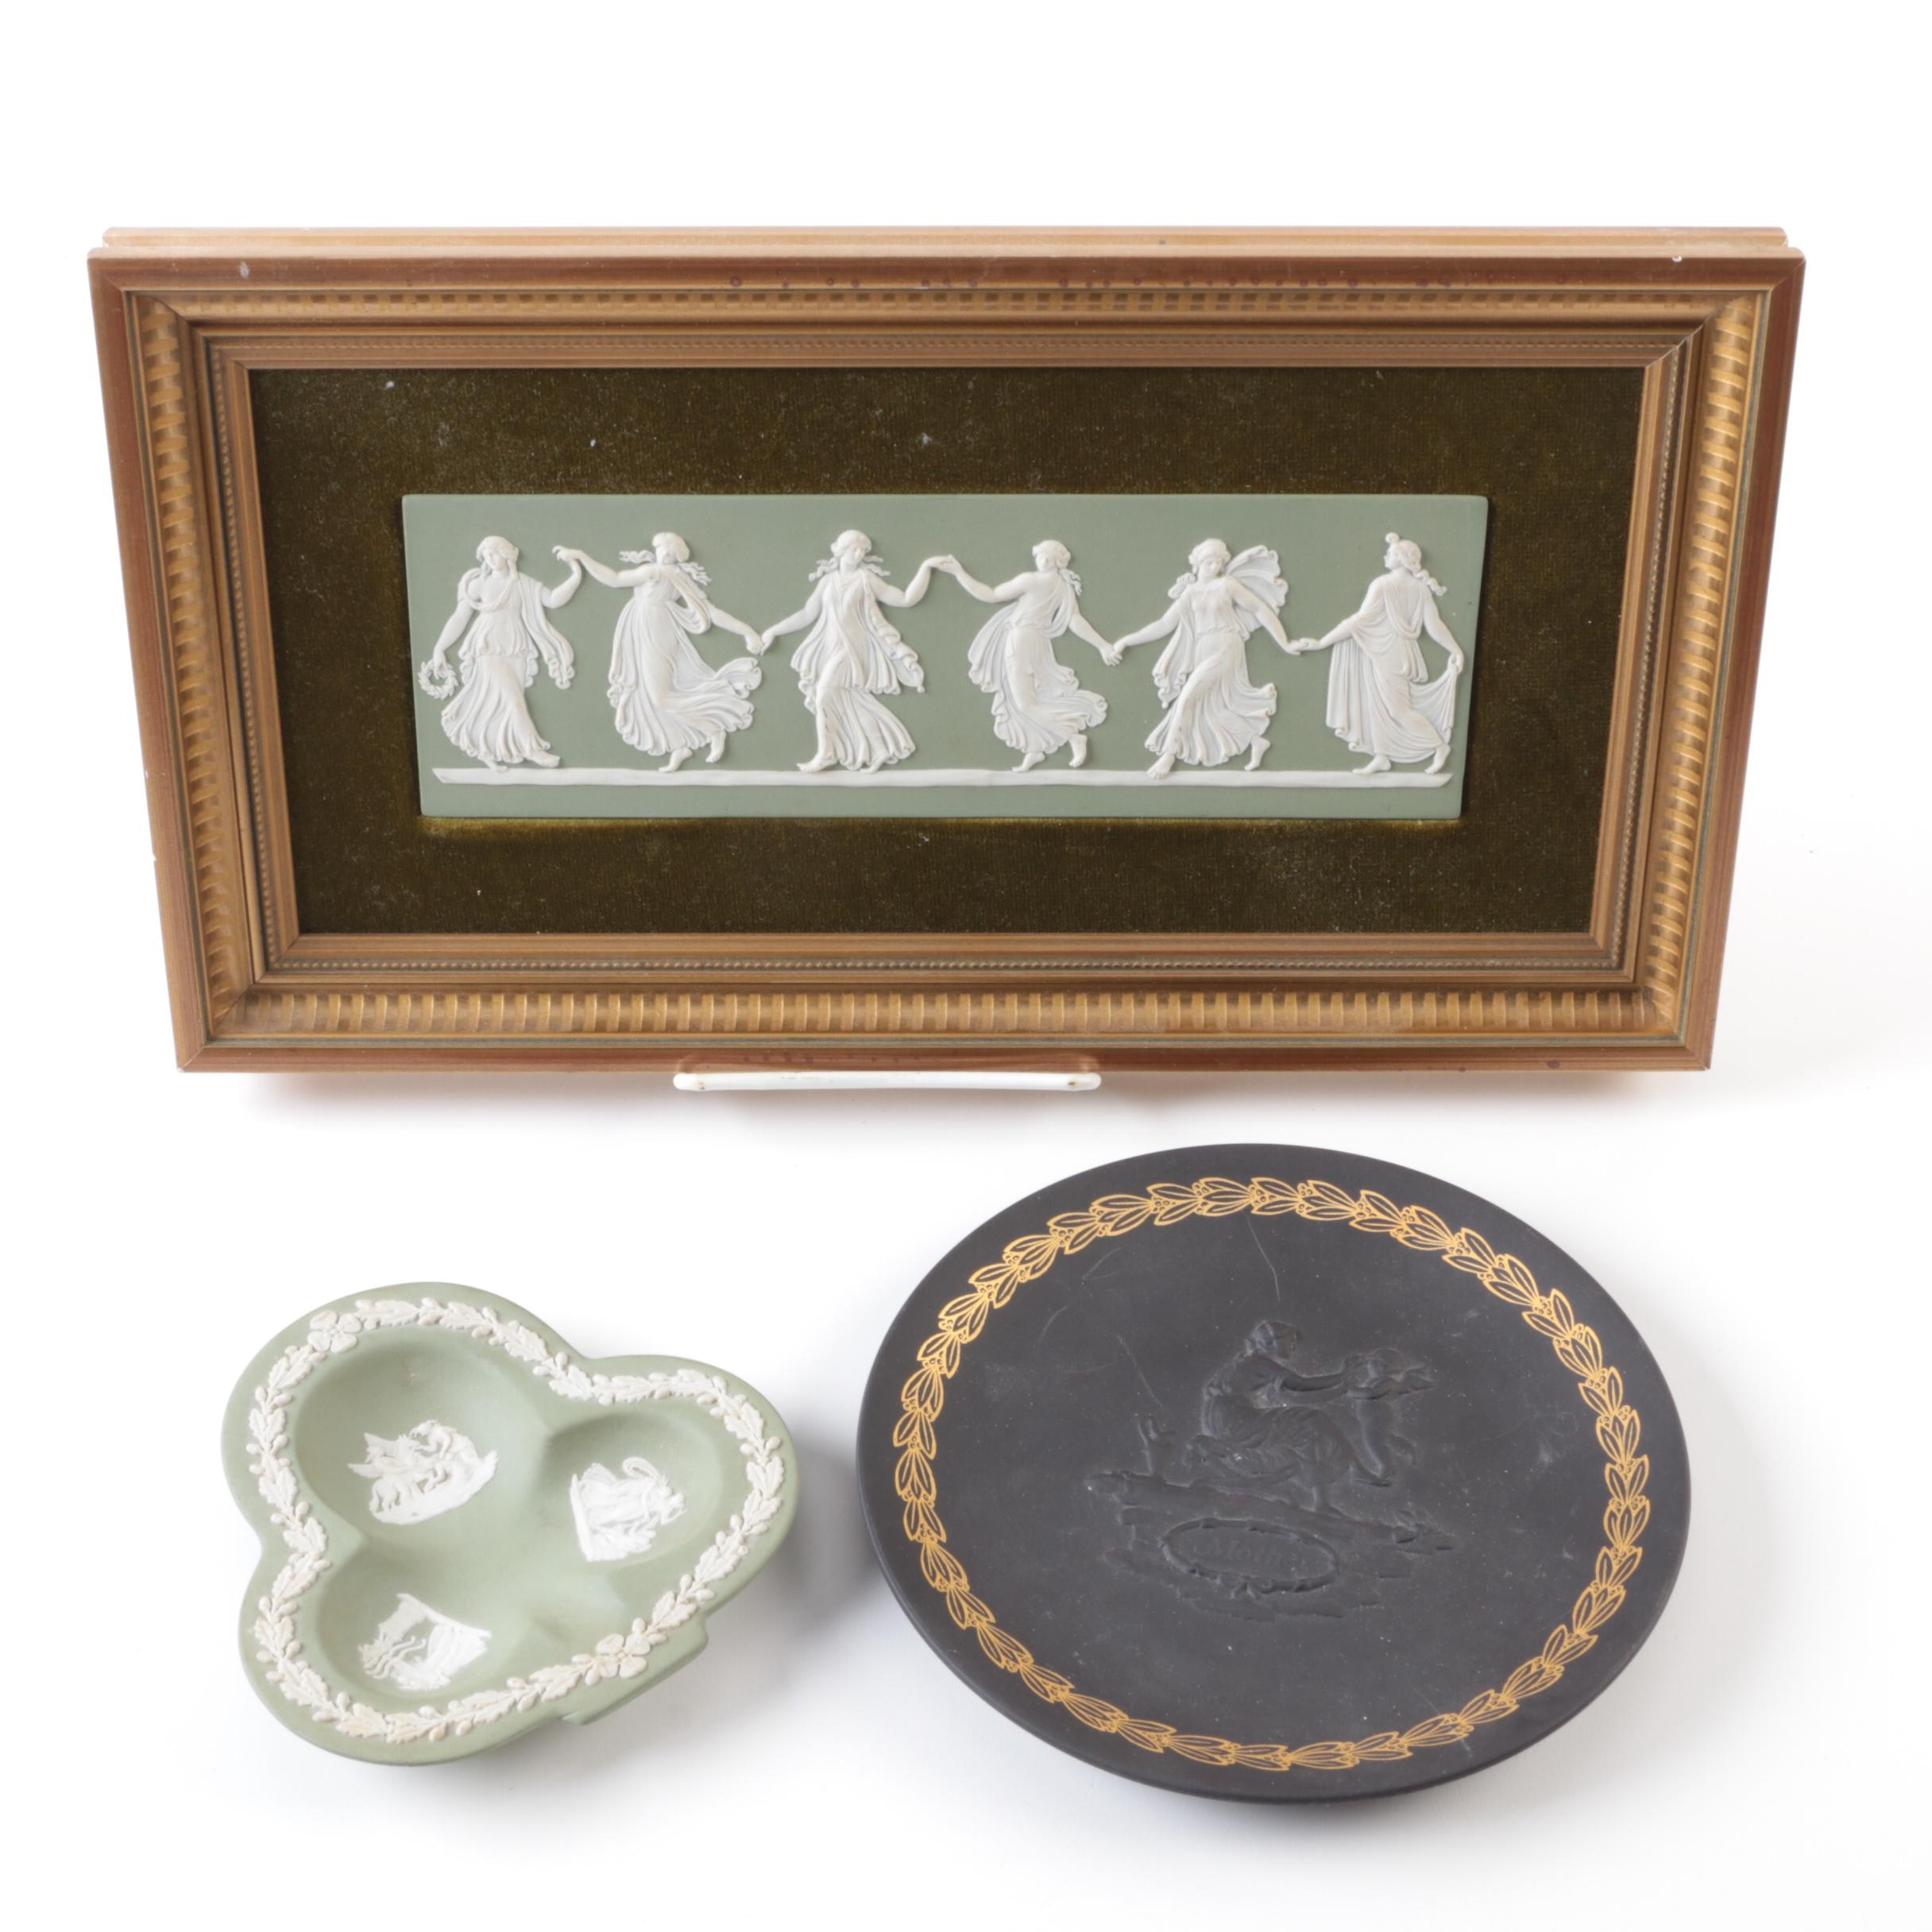 "Wedgwood ""Dancing Hours"" Jasperware Plaque with Decorative Trays"